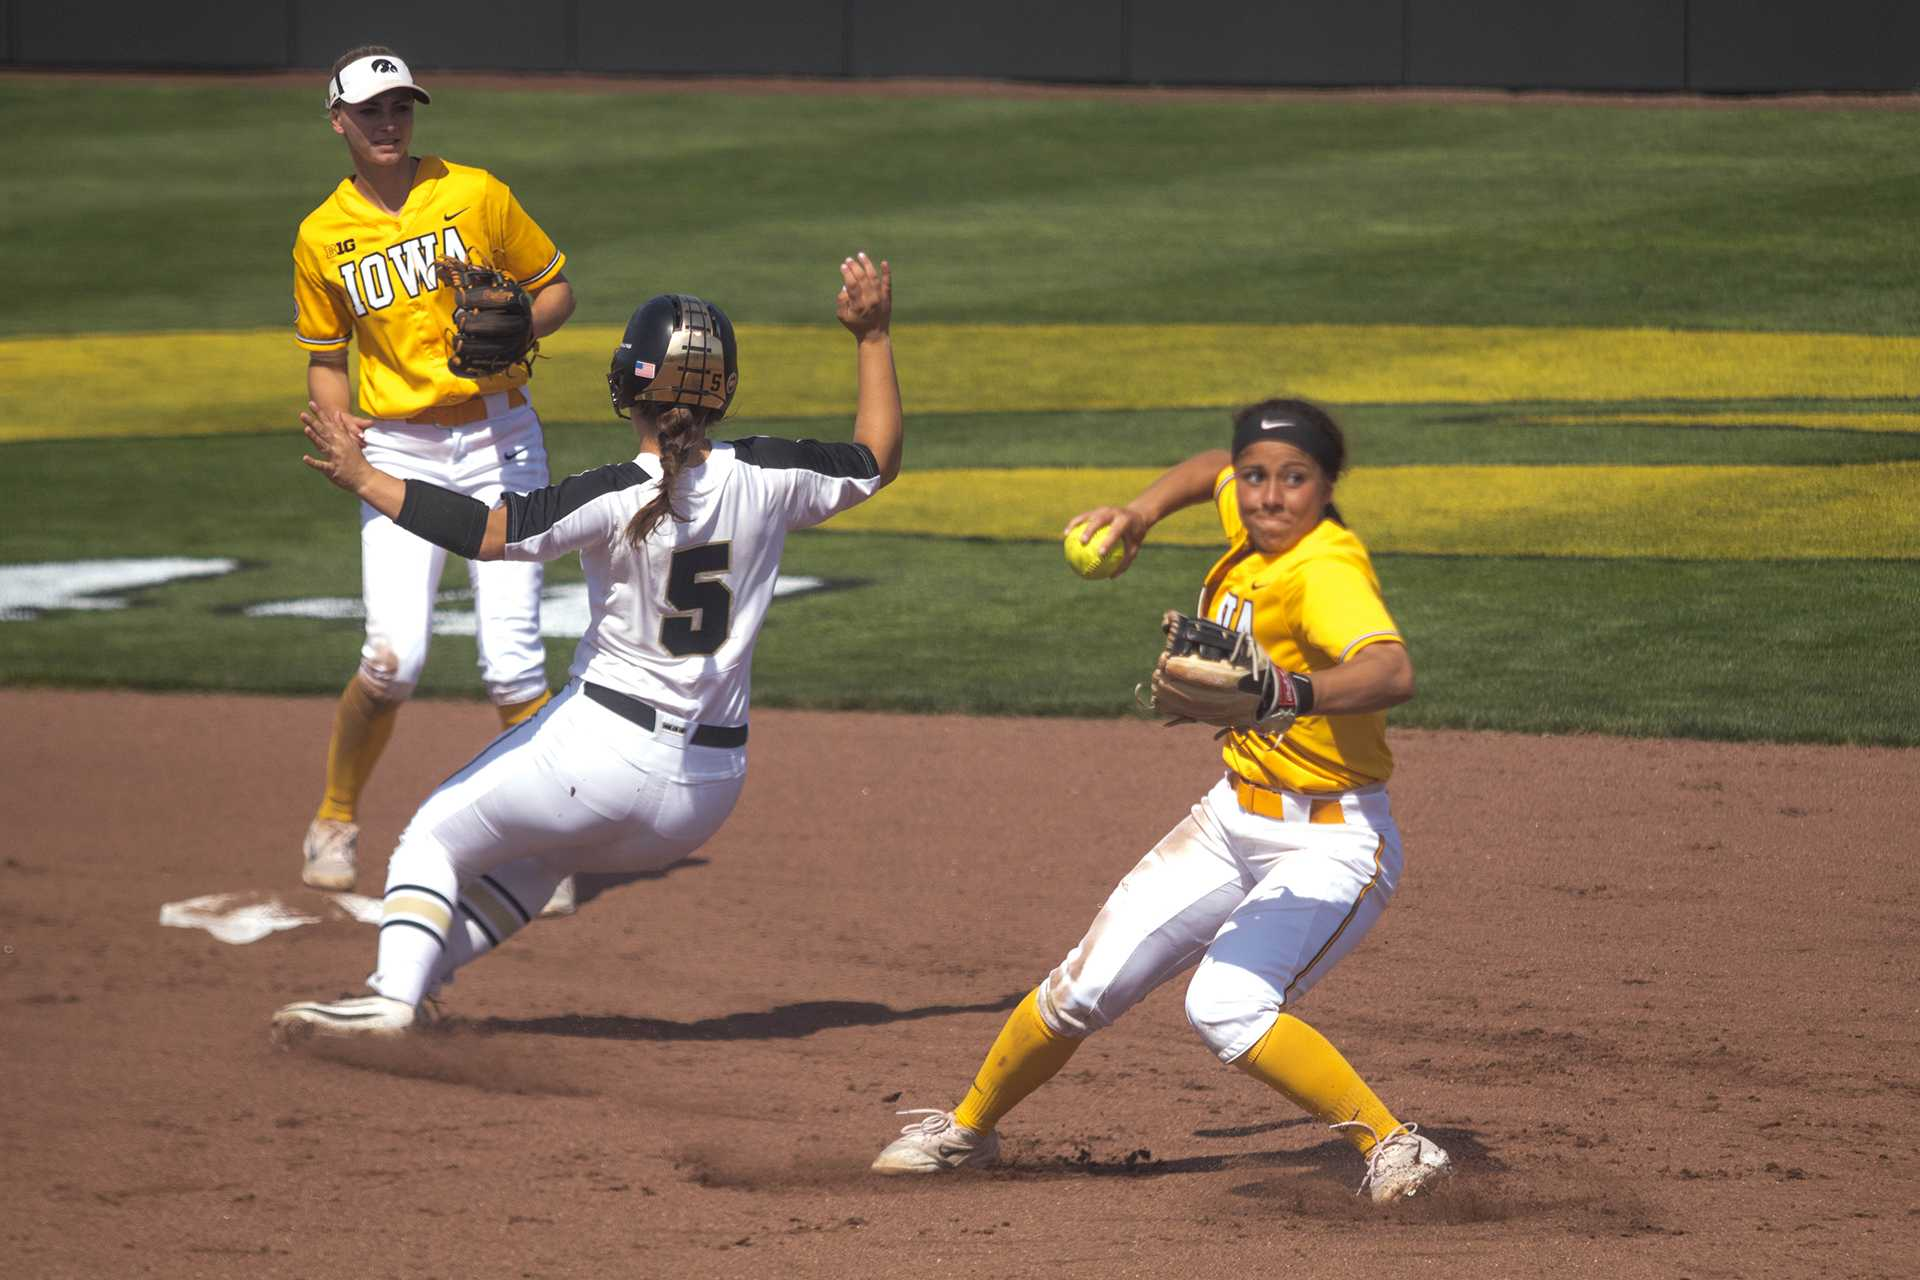 Lea Shaw throws to first base during Iowa's game against Purdue at Pearl Field on May 5, 2018. The Hawkeyes were defeated 9-0. (Megan Nagorzanski/The Daily Iowan)